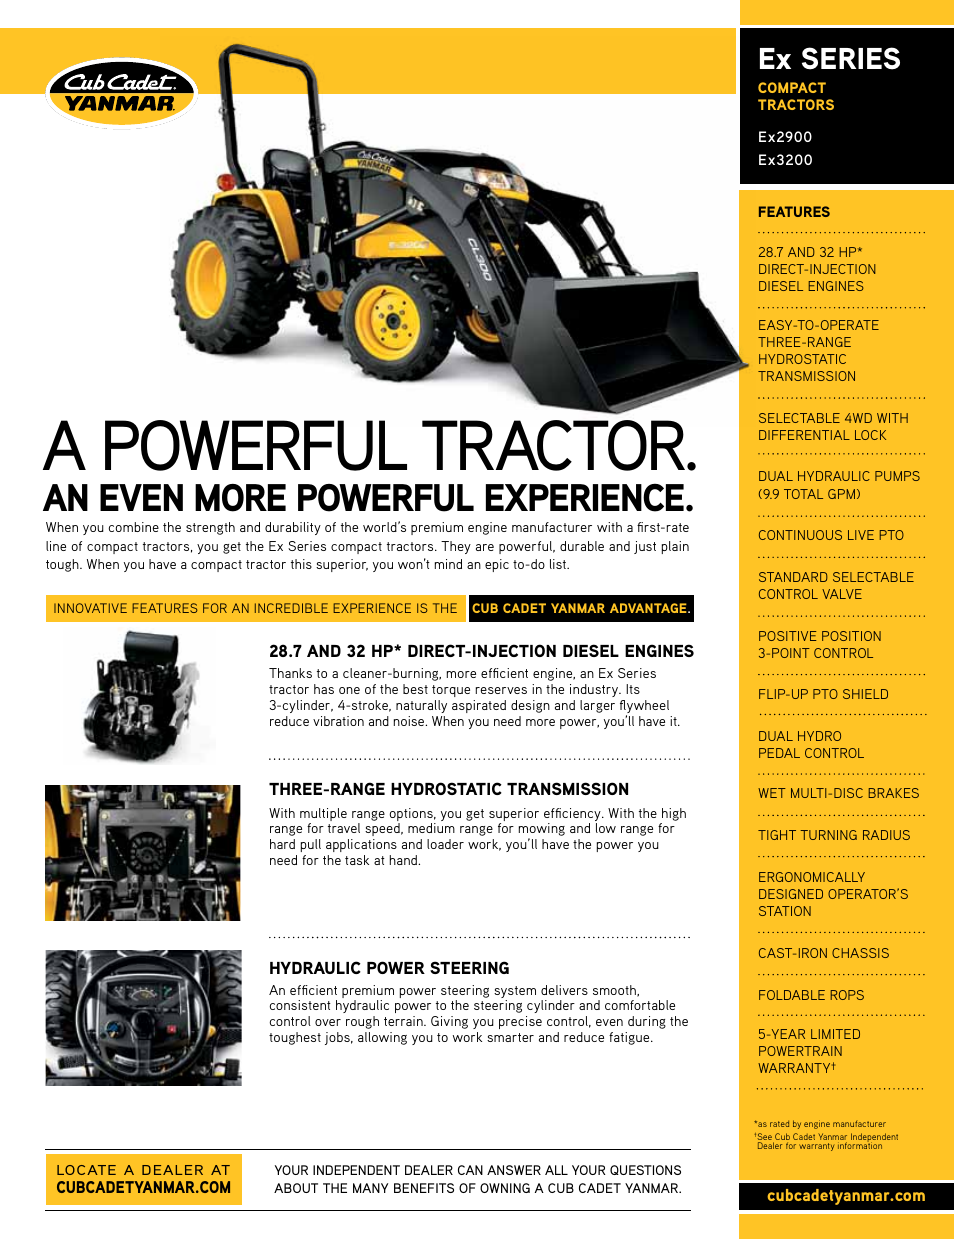 Cub Cadet EX SERIES EX3200 User Manual | 2 pages | Also for